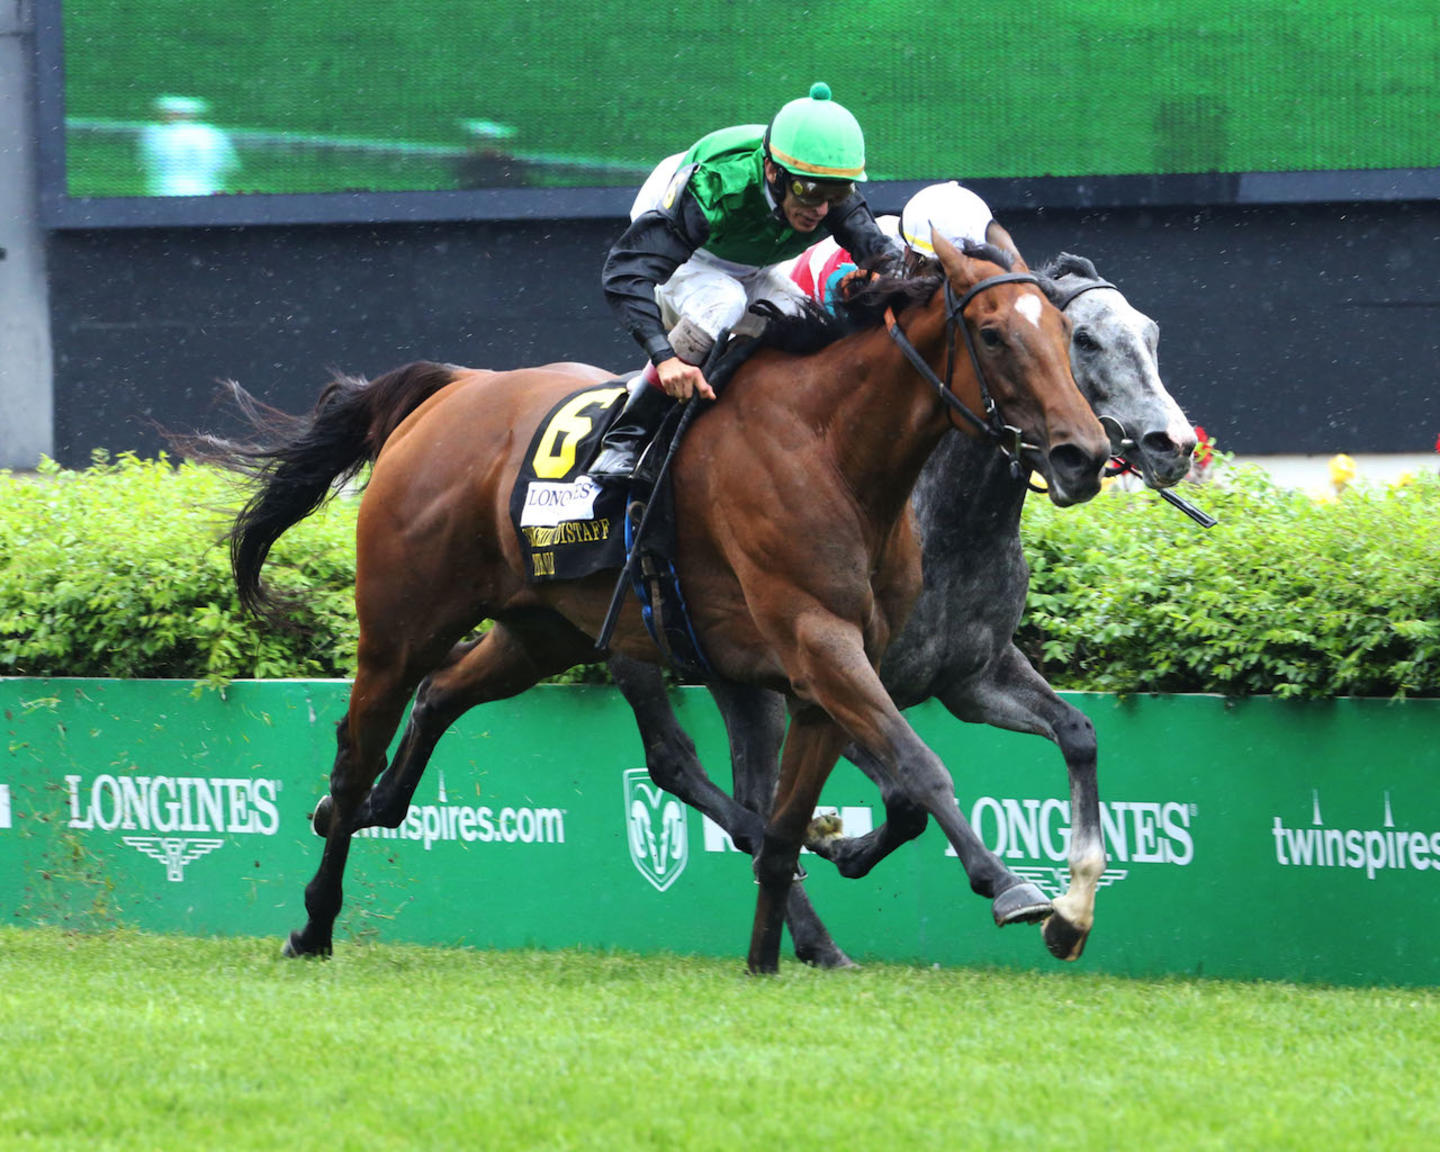 PROCTOR'S LEDGE - The Longines Churchill Distaff Turf Mile G2 - 33rd Running - 05-05-18 - R07 - CD - Finish 03